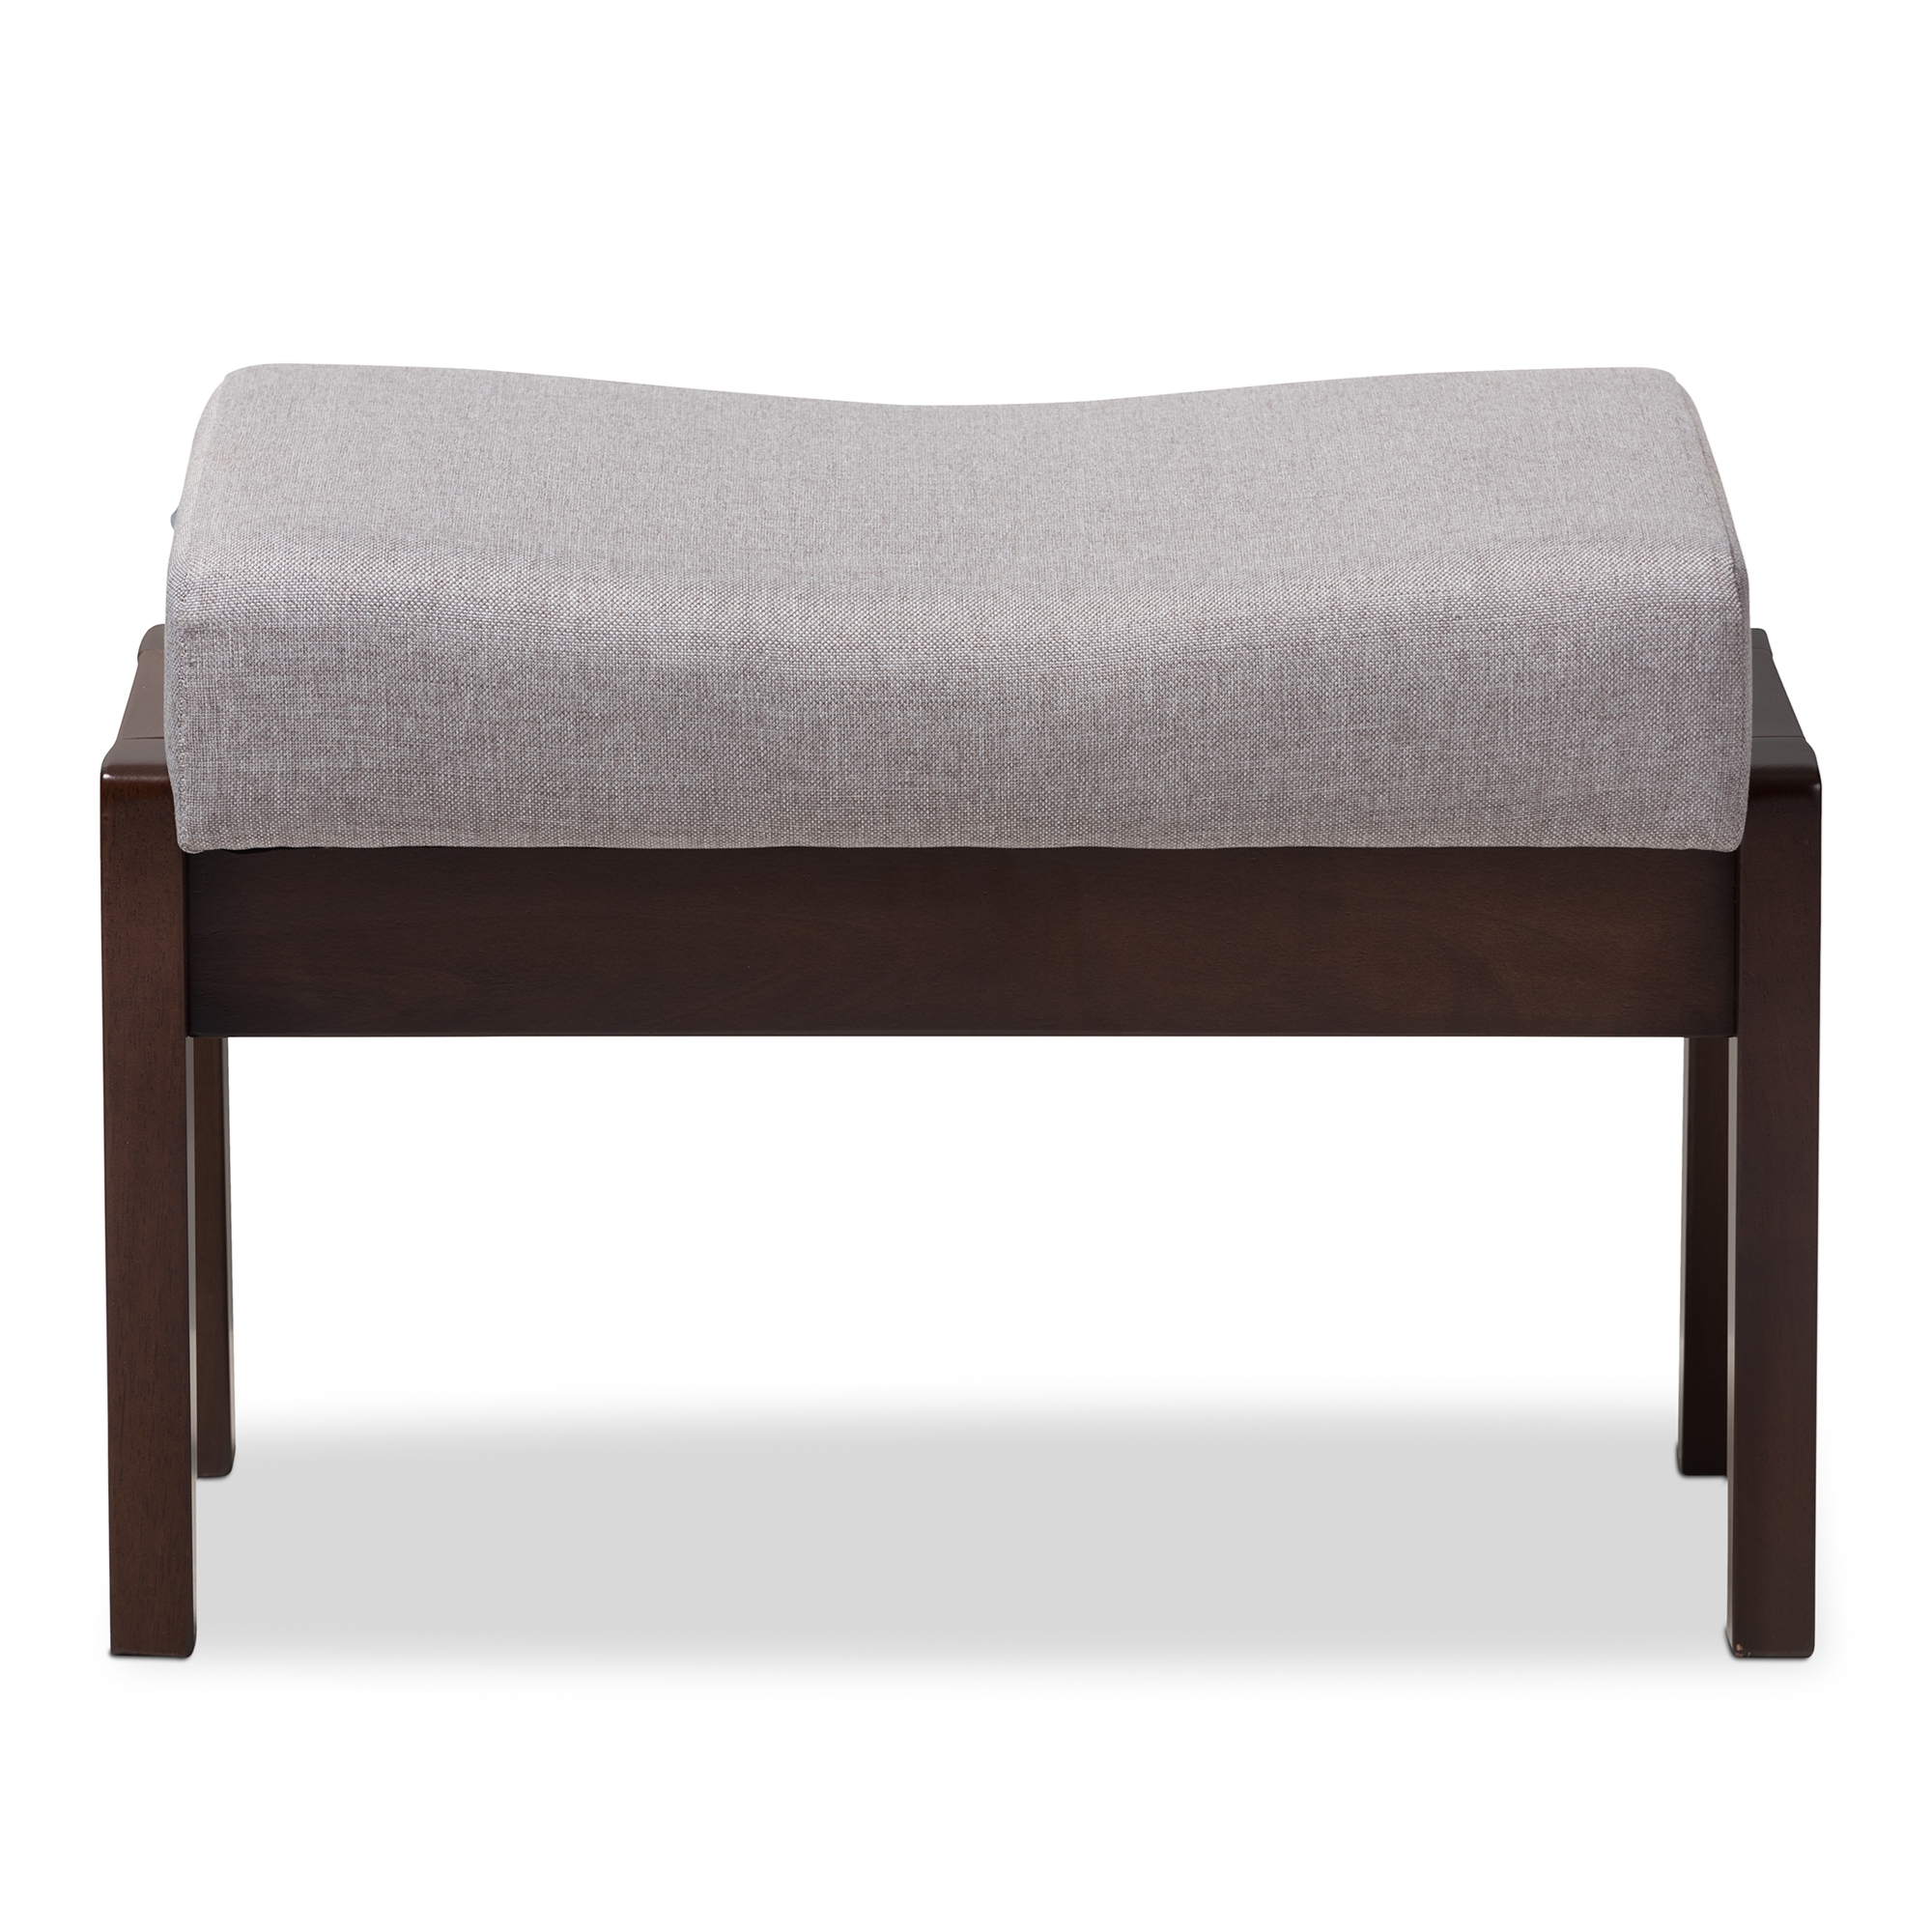 ... Baxton Studio Enya Mid Century Modern Walnut Wood Grey Fabric Ottoman    BSOLB160 Grey ...